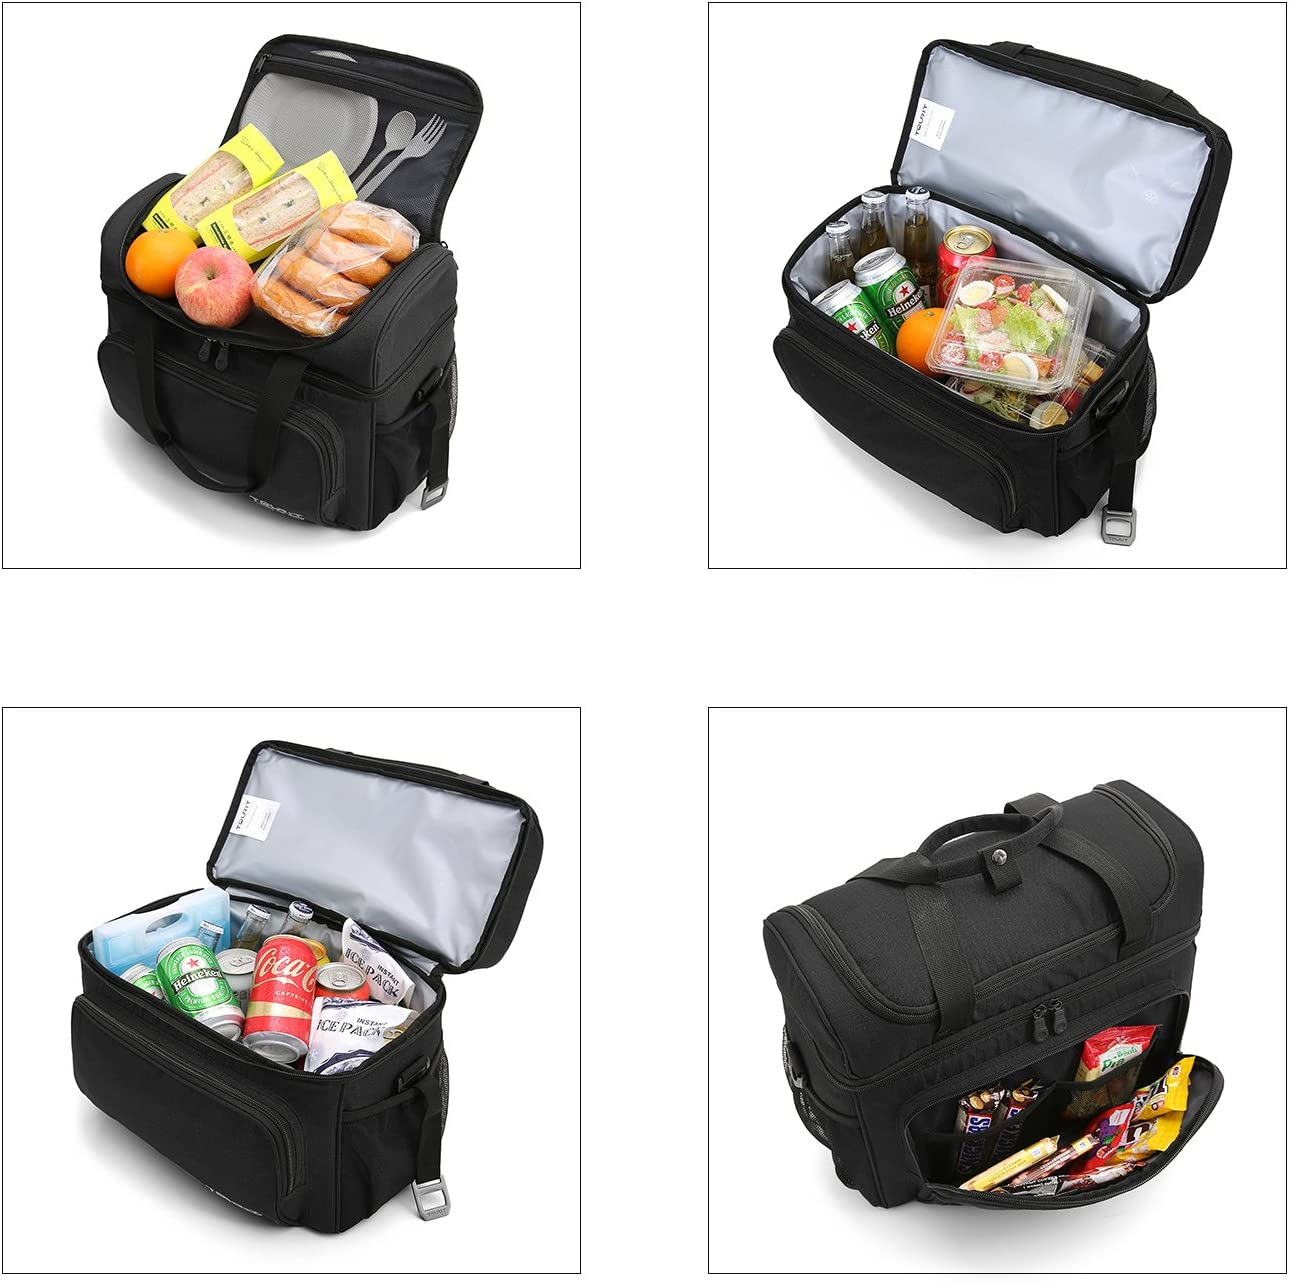 TOURIT Insulated Picnic Cool Bag Leakproof Cooler Bags with Double Handles Large Capacity for Camping Hiking Beach Day Trip 22L